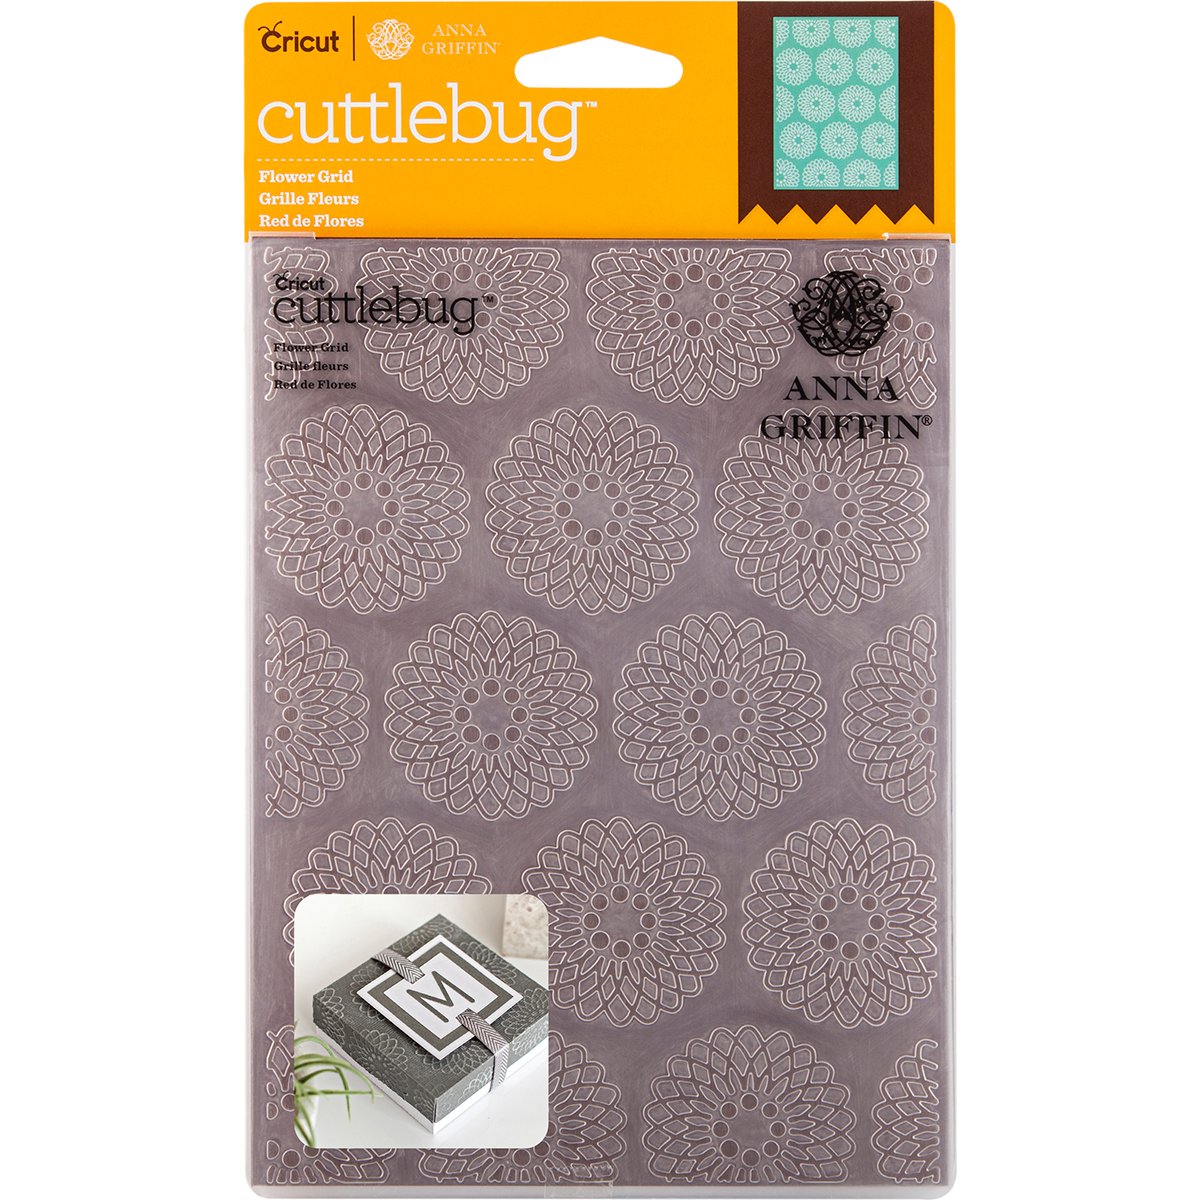 Cuttlebug 5X7 Embossing Folder By Anna Griffin-Flower Grid